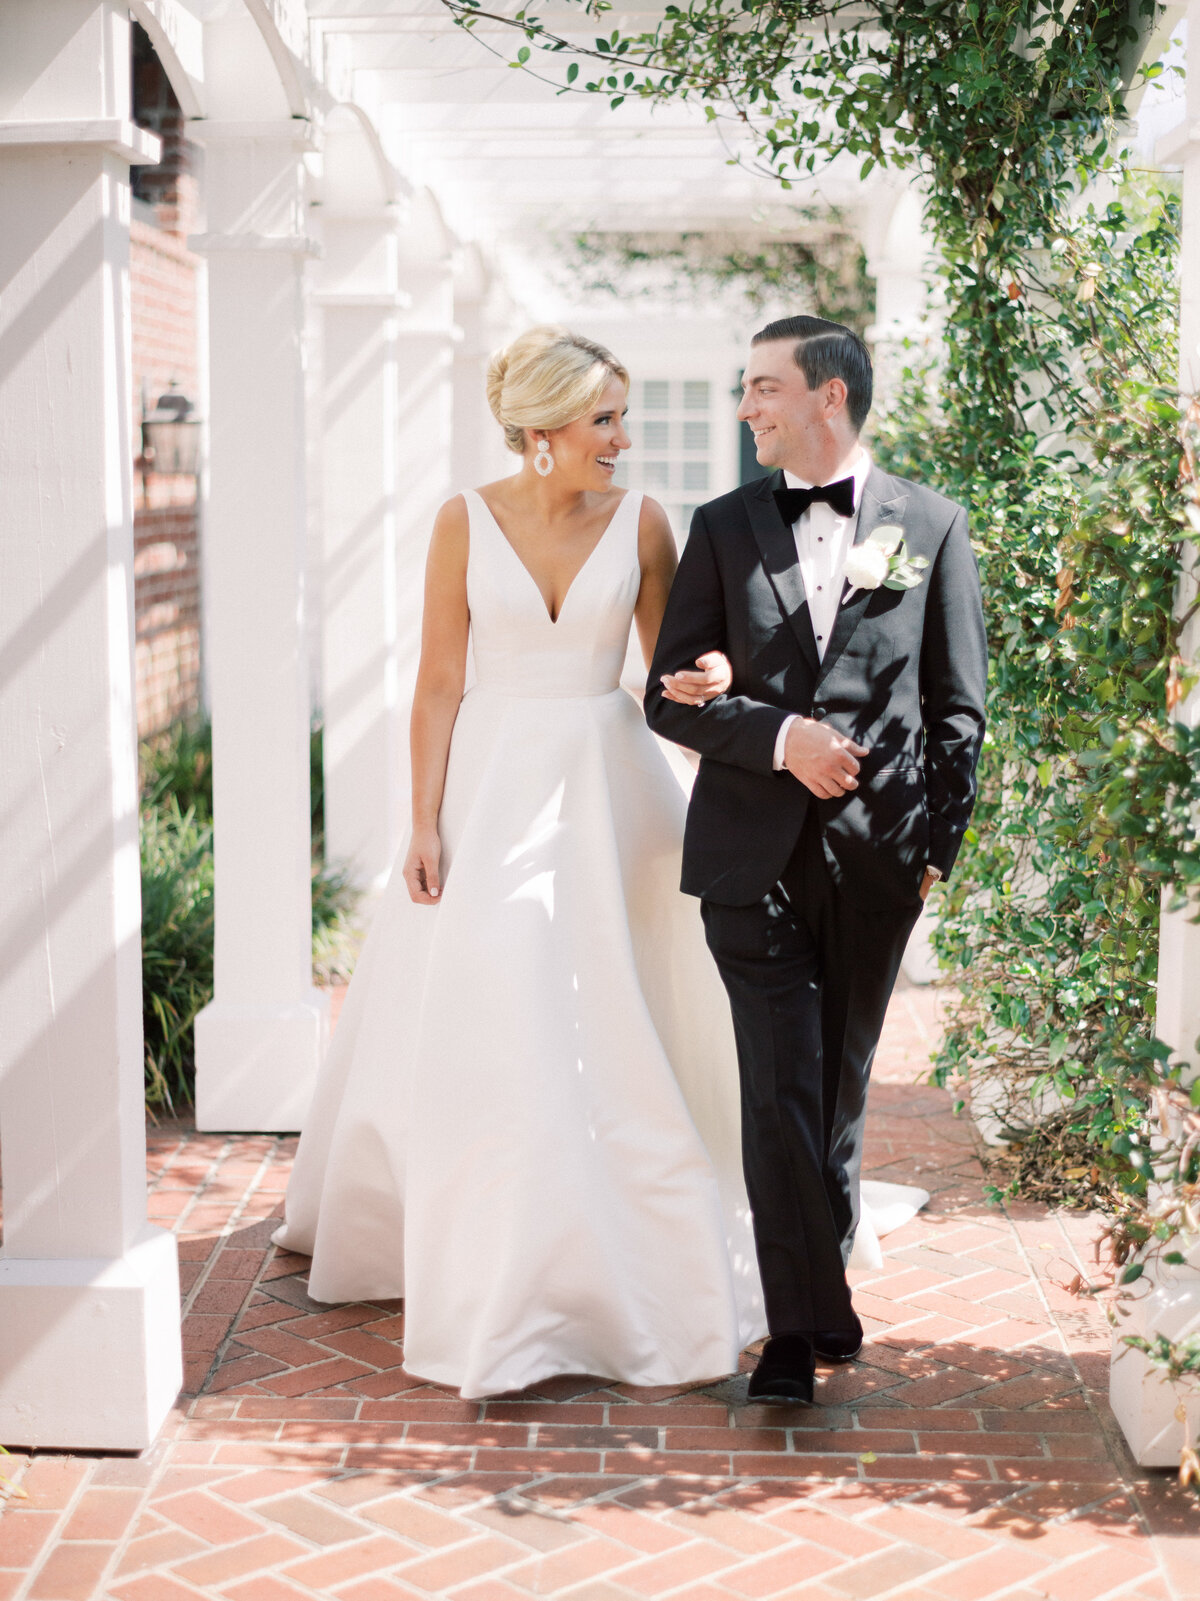 Belfair-Plantation-Bluffton-Hilton-Head-Island-Wedding-Philip-Casey-Photo-20